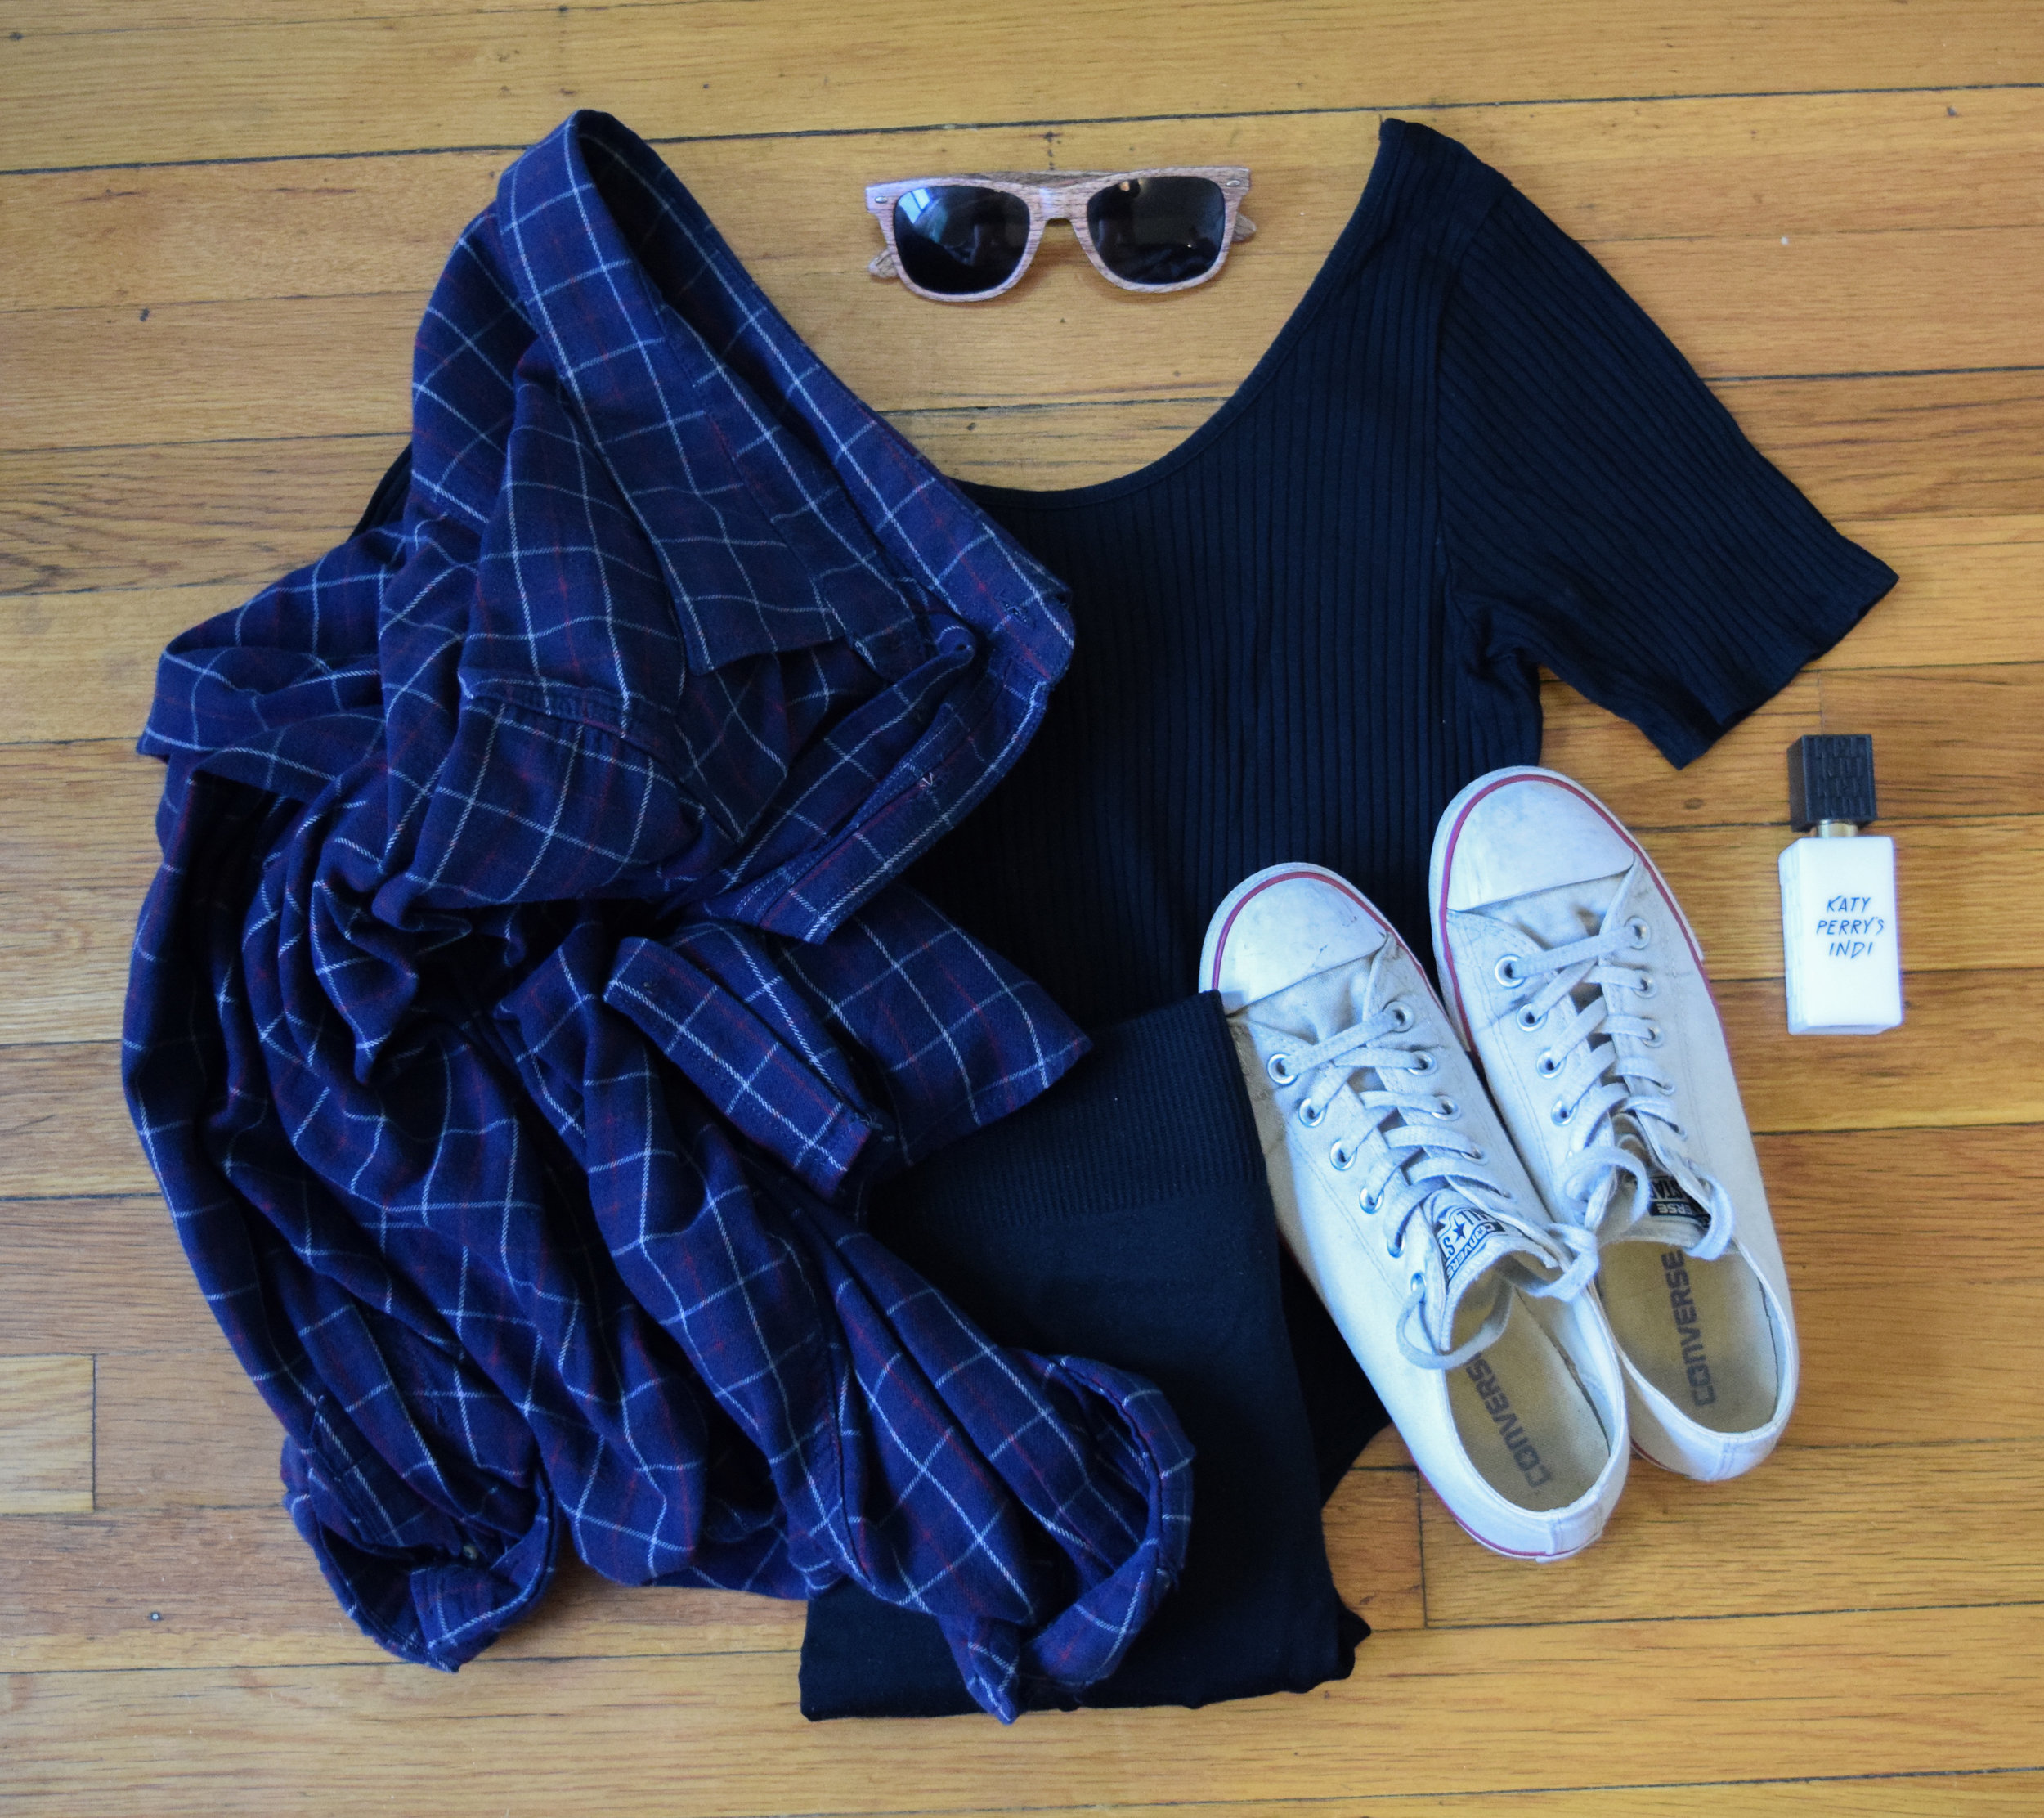 flannel (from my dad!).  bodysuit . leggings (no clue, i'm so sorry!).  sneakers .  sunglasses  (mine are lighter).  perfume .